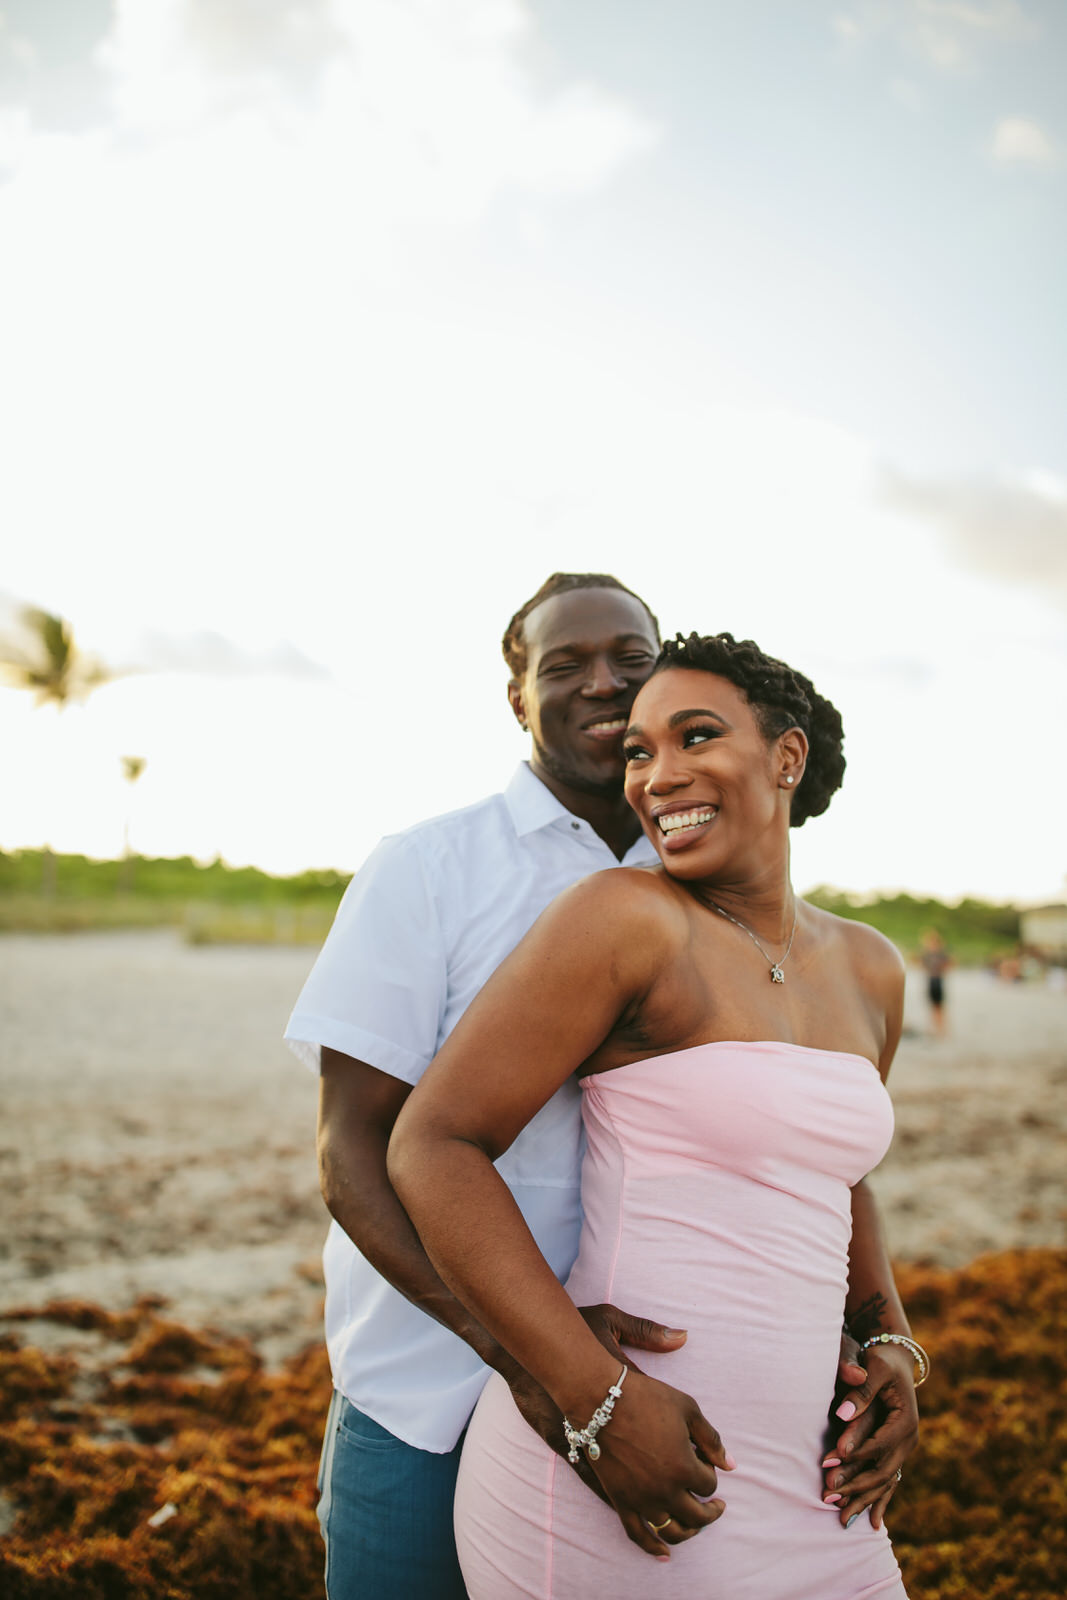 beachy-engagement-portraits-fort-lauderale-tiny-house-photo-wedding-photographer-9.jpg